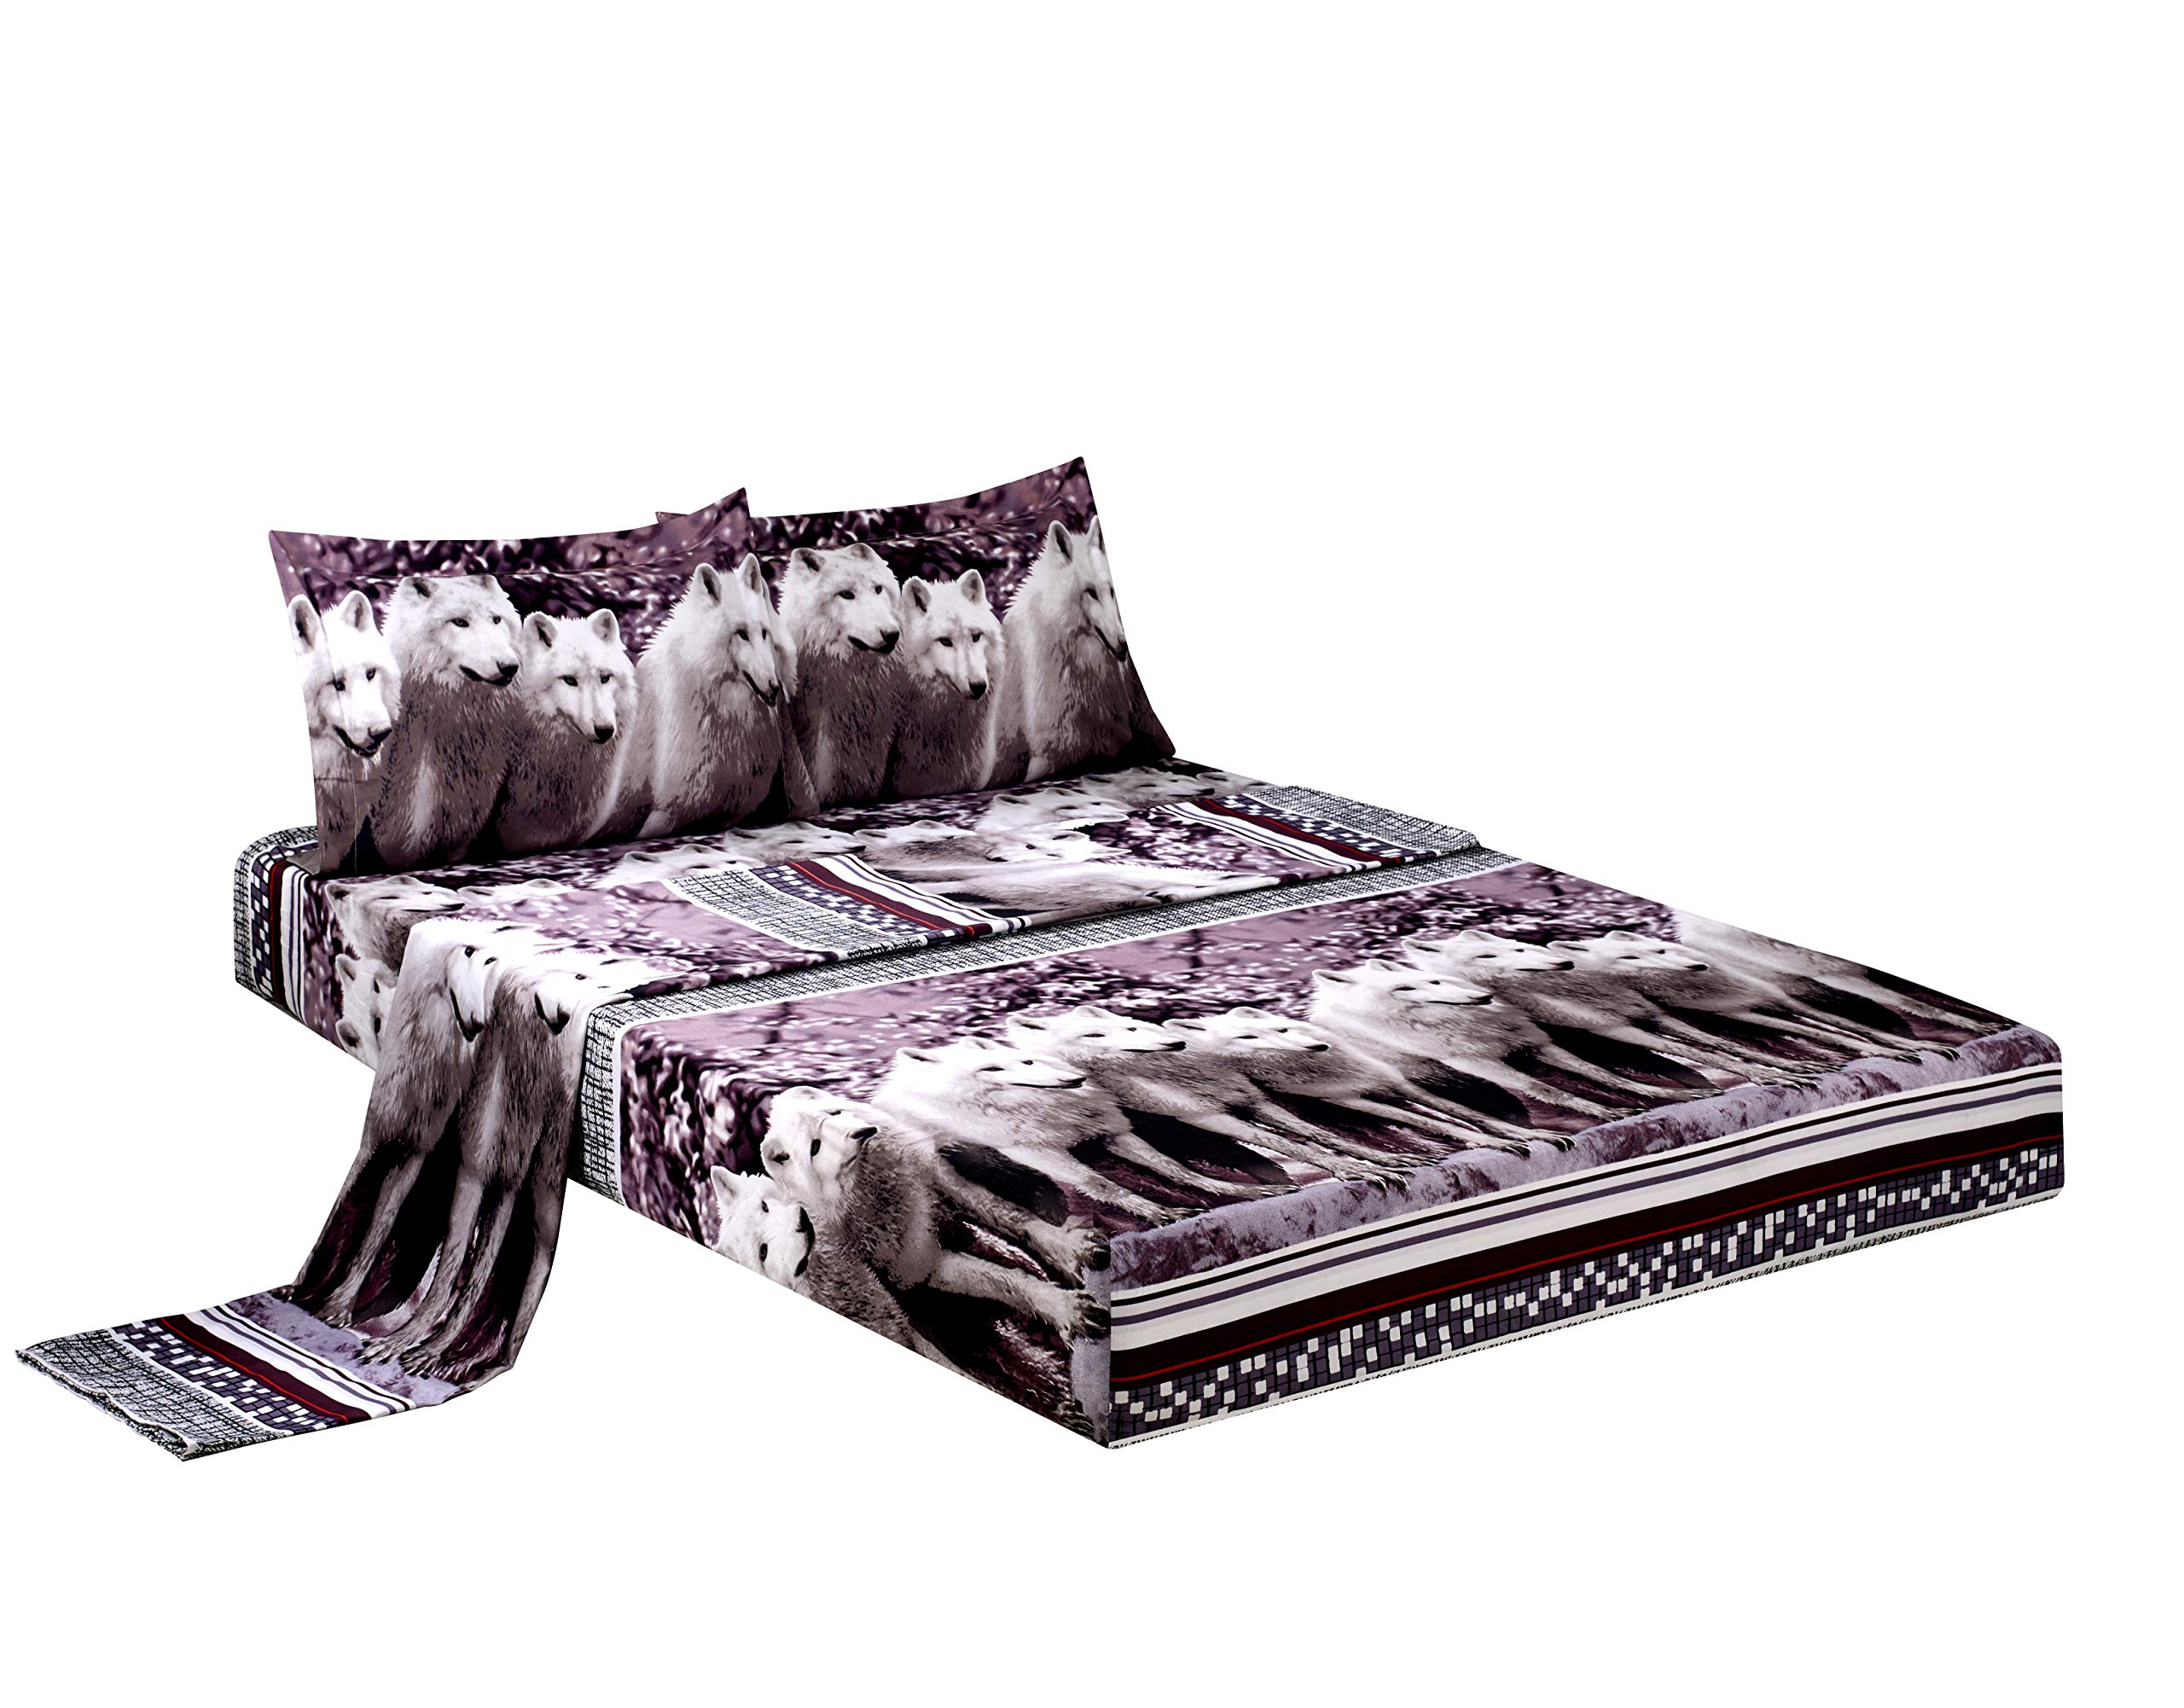 BEDnLINENS Luxurious 3D Bed Sheet Set Wild Life Animals and Scenery Print a Pack of White Mountain Wolves in Gray, Purple and Black Color in King Size (King,WOLF-Y08)